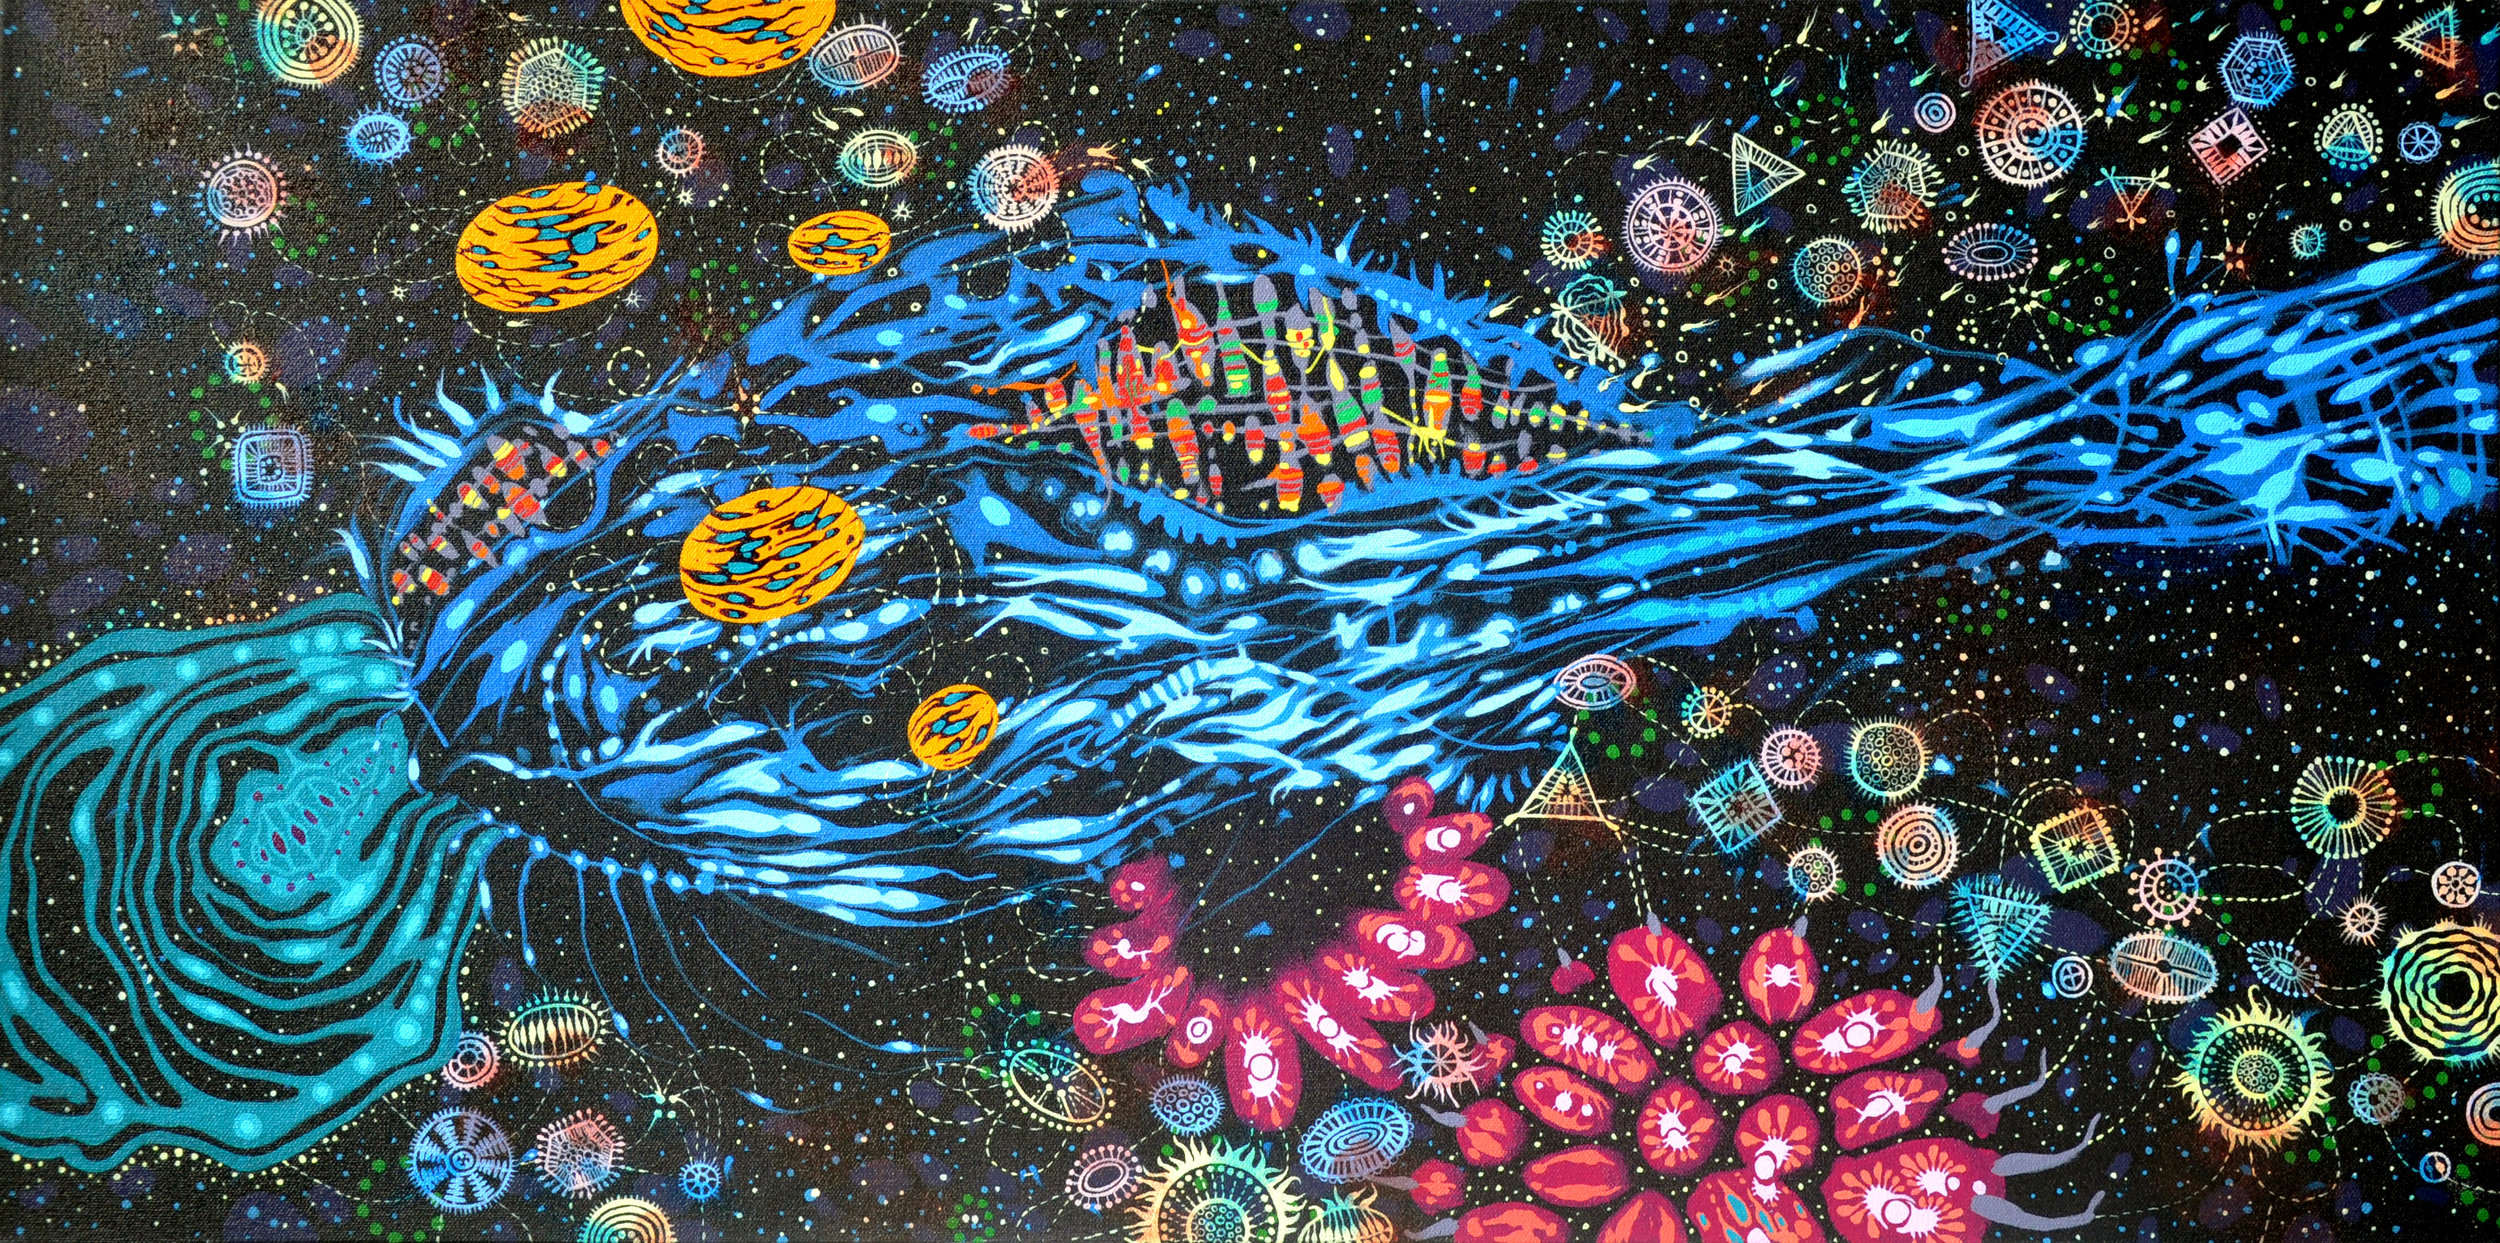 "Beam Me Up 15"" x 30"", acrylic on canvas, 2012."